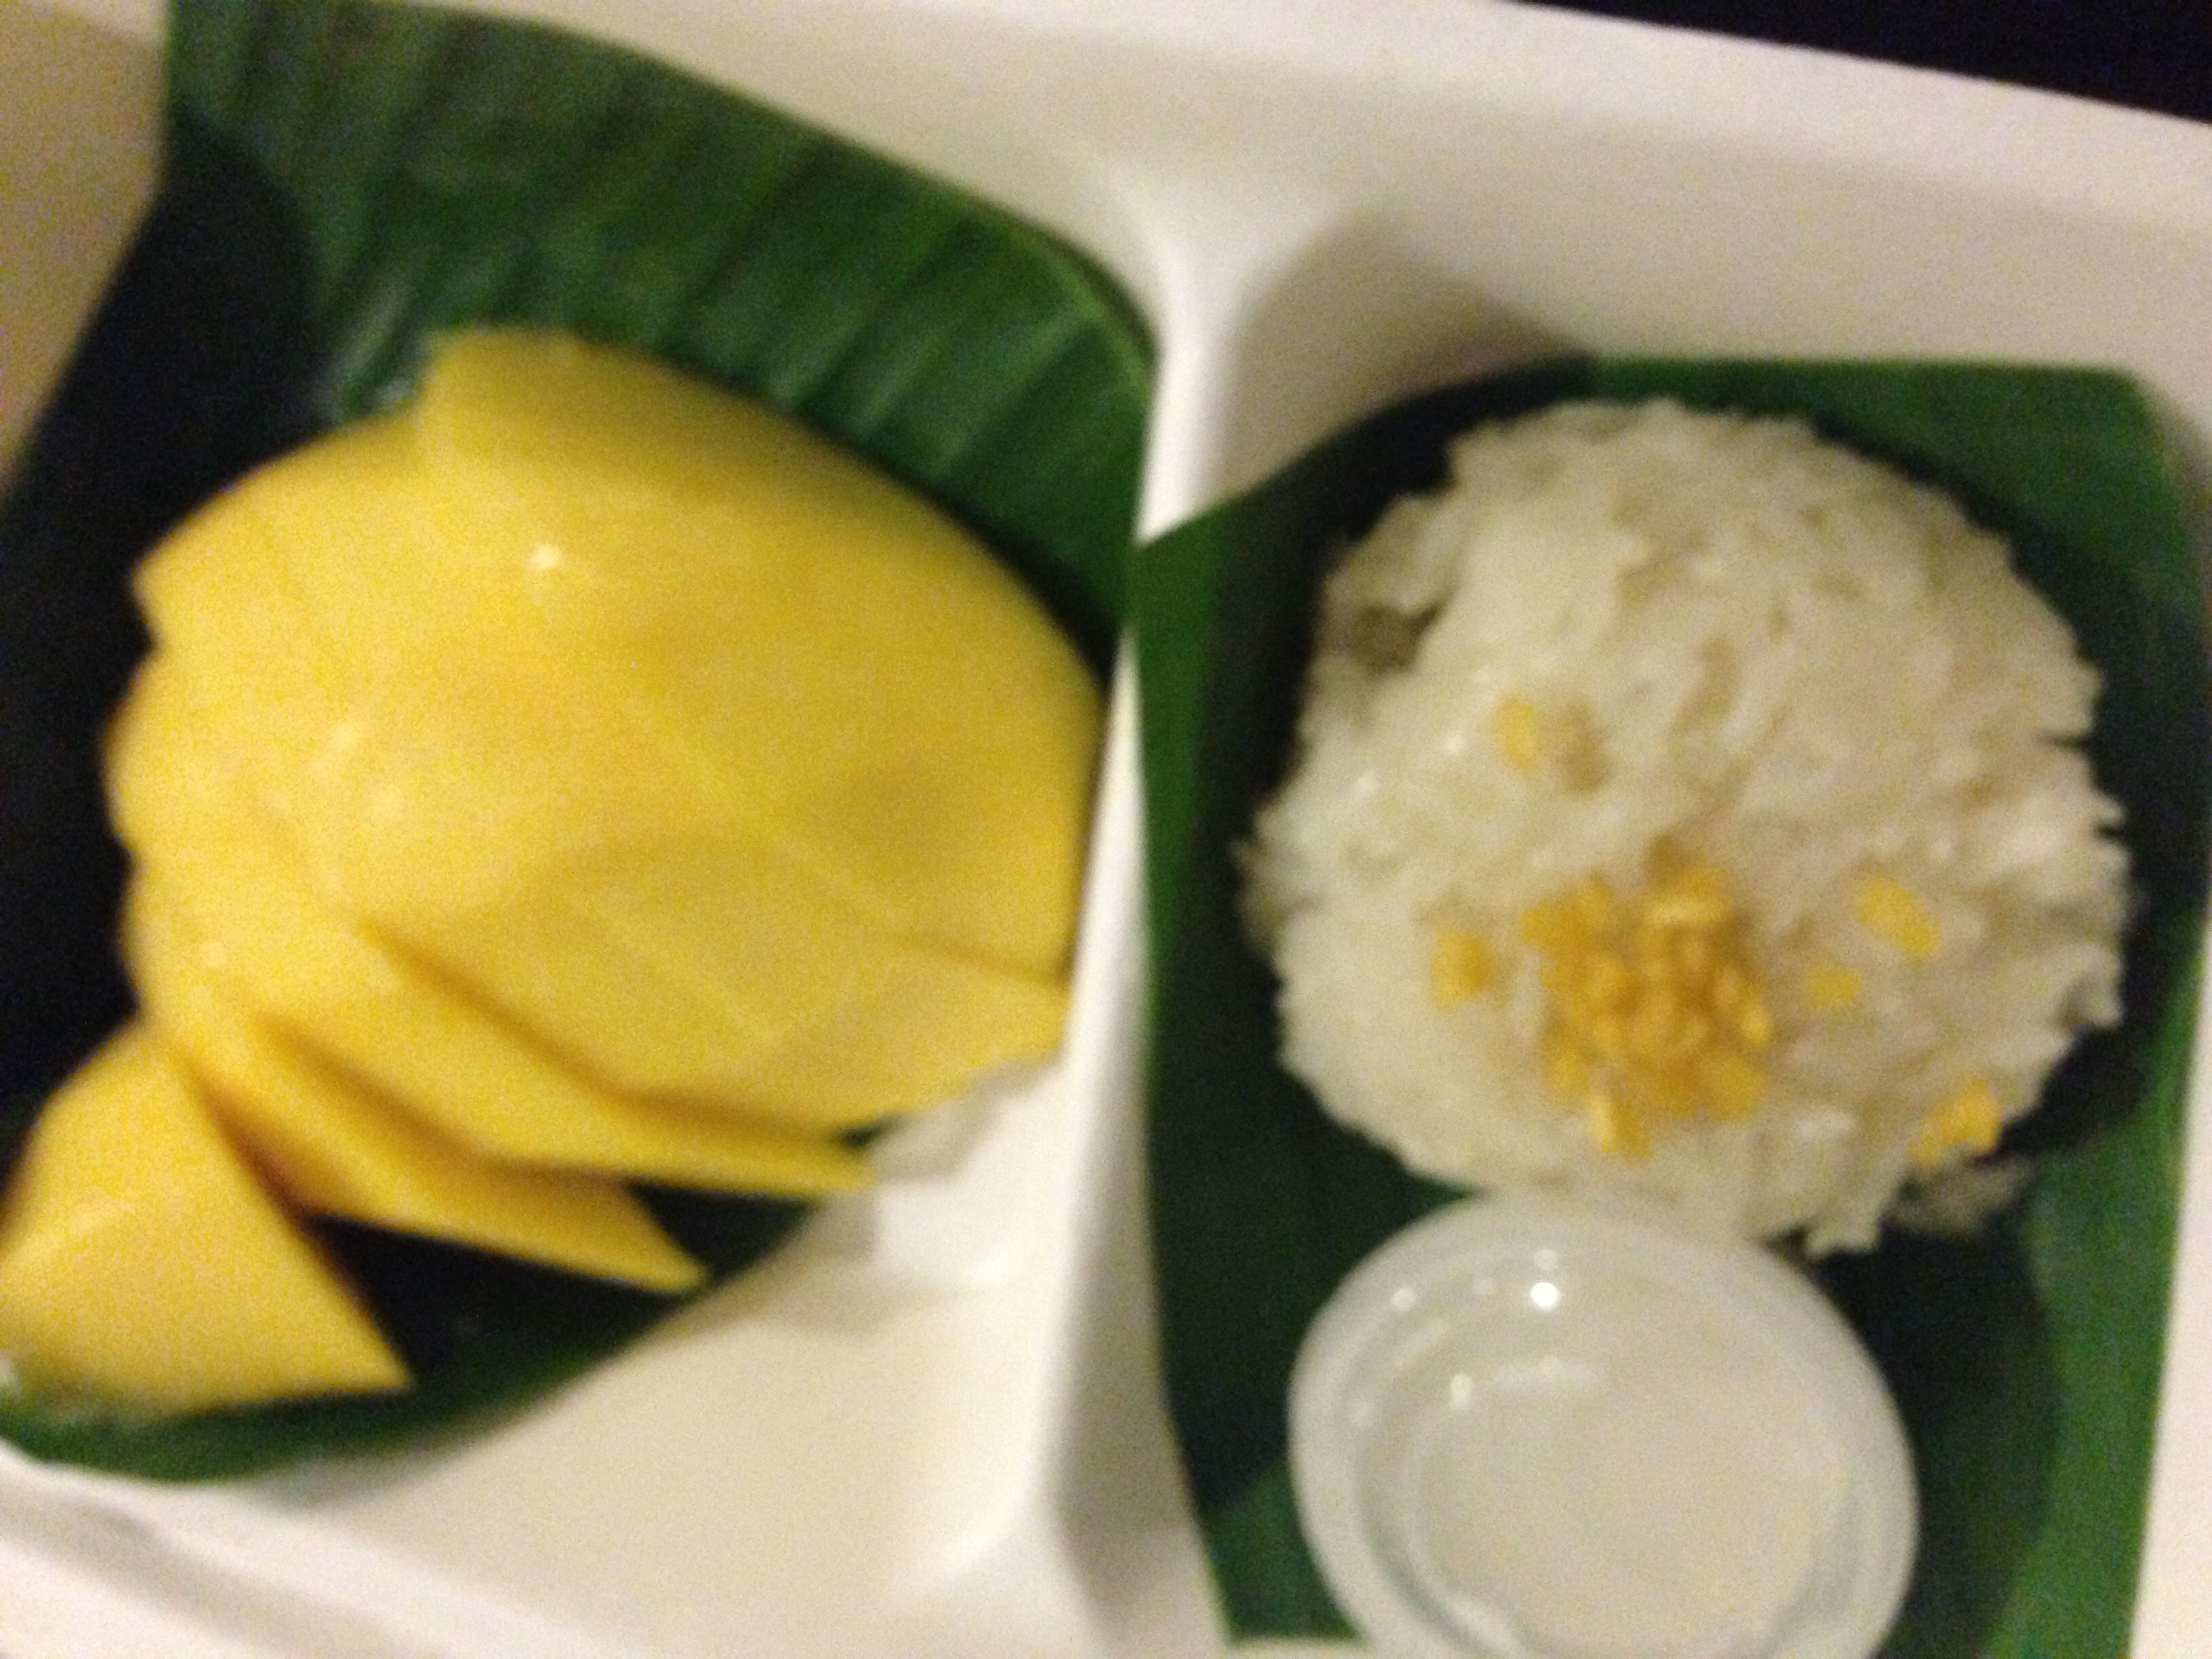 Slices of mango and a scoop of sticky rice on separate leaves